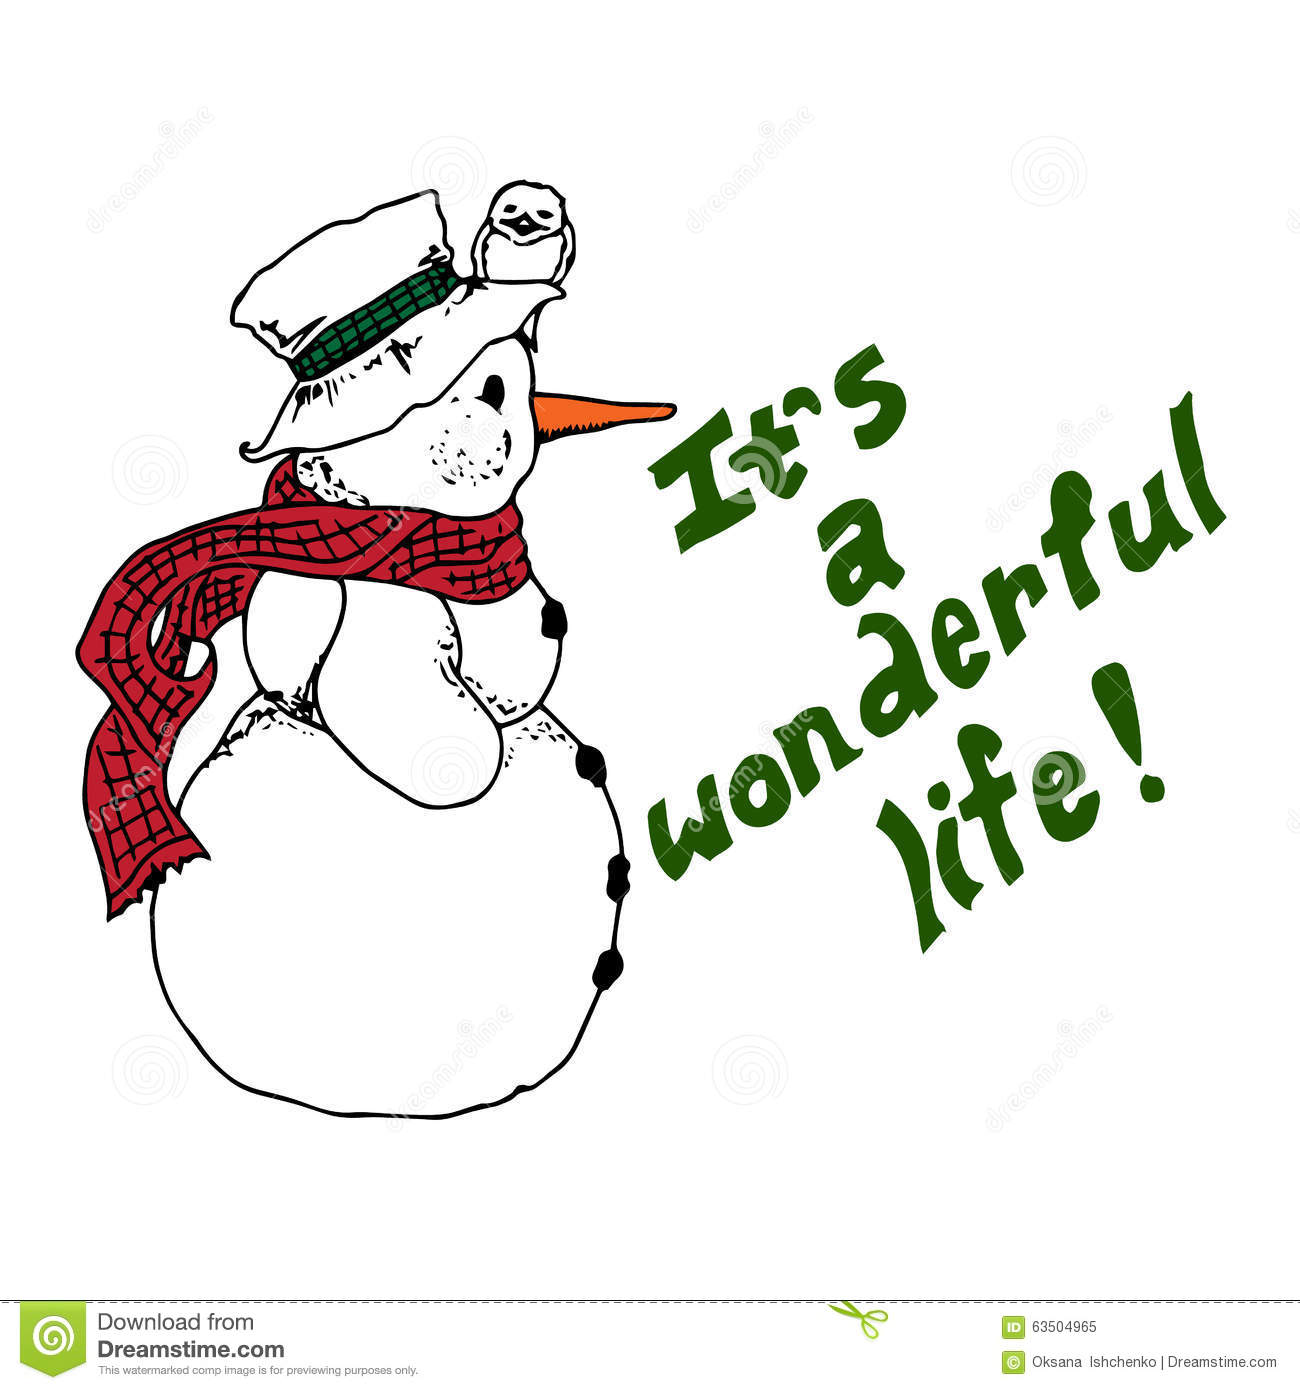 Christmas Illustration. Snowman With A Bird Wearing A Hat. It's A.